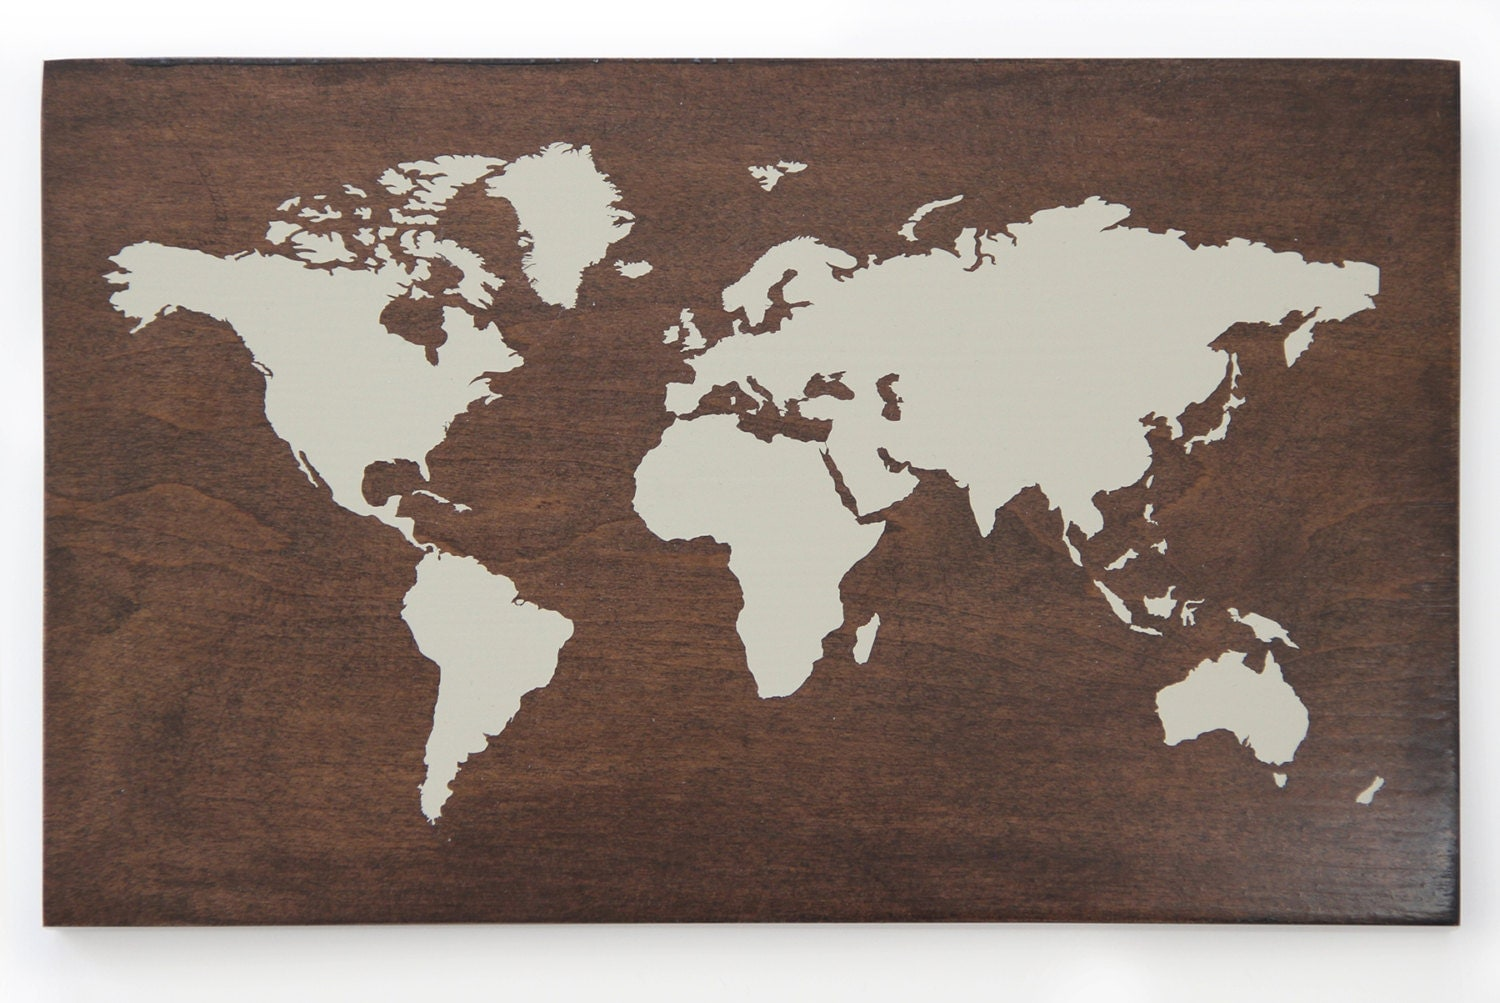 Decorative World Map By Blissnotions On Etsy